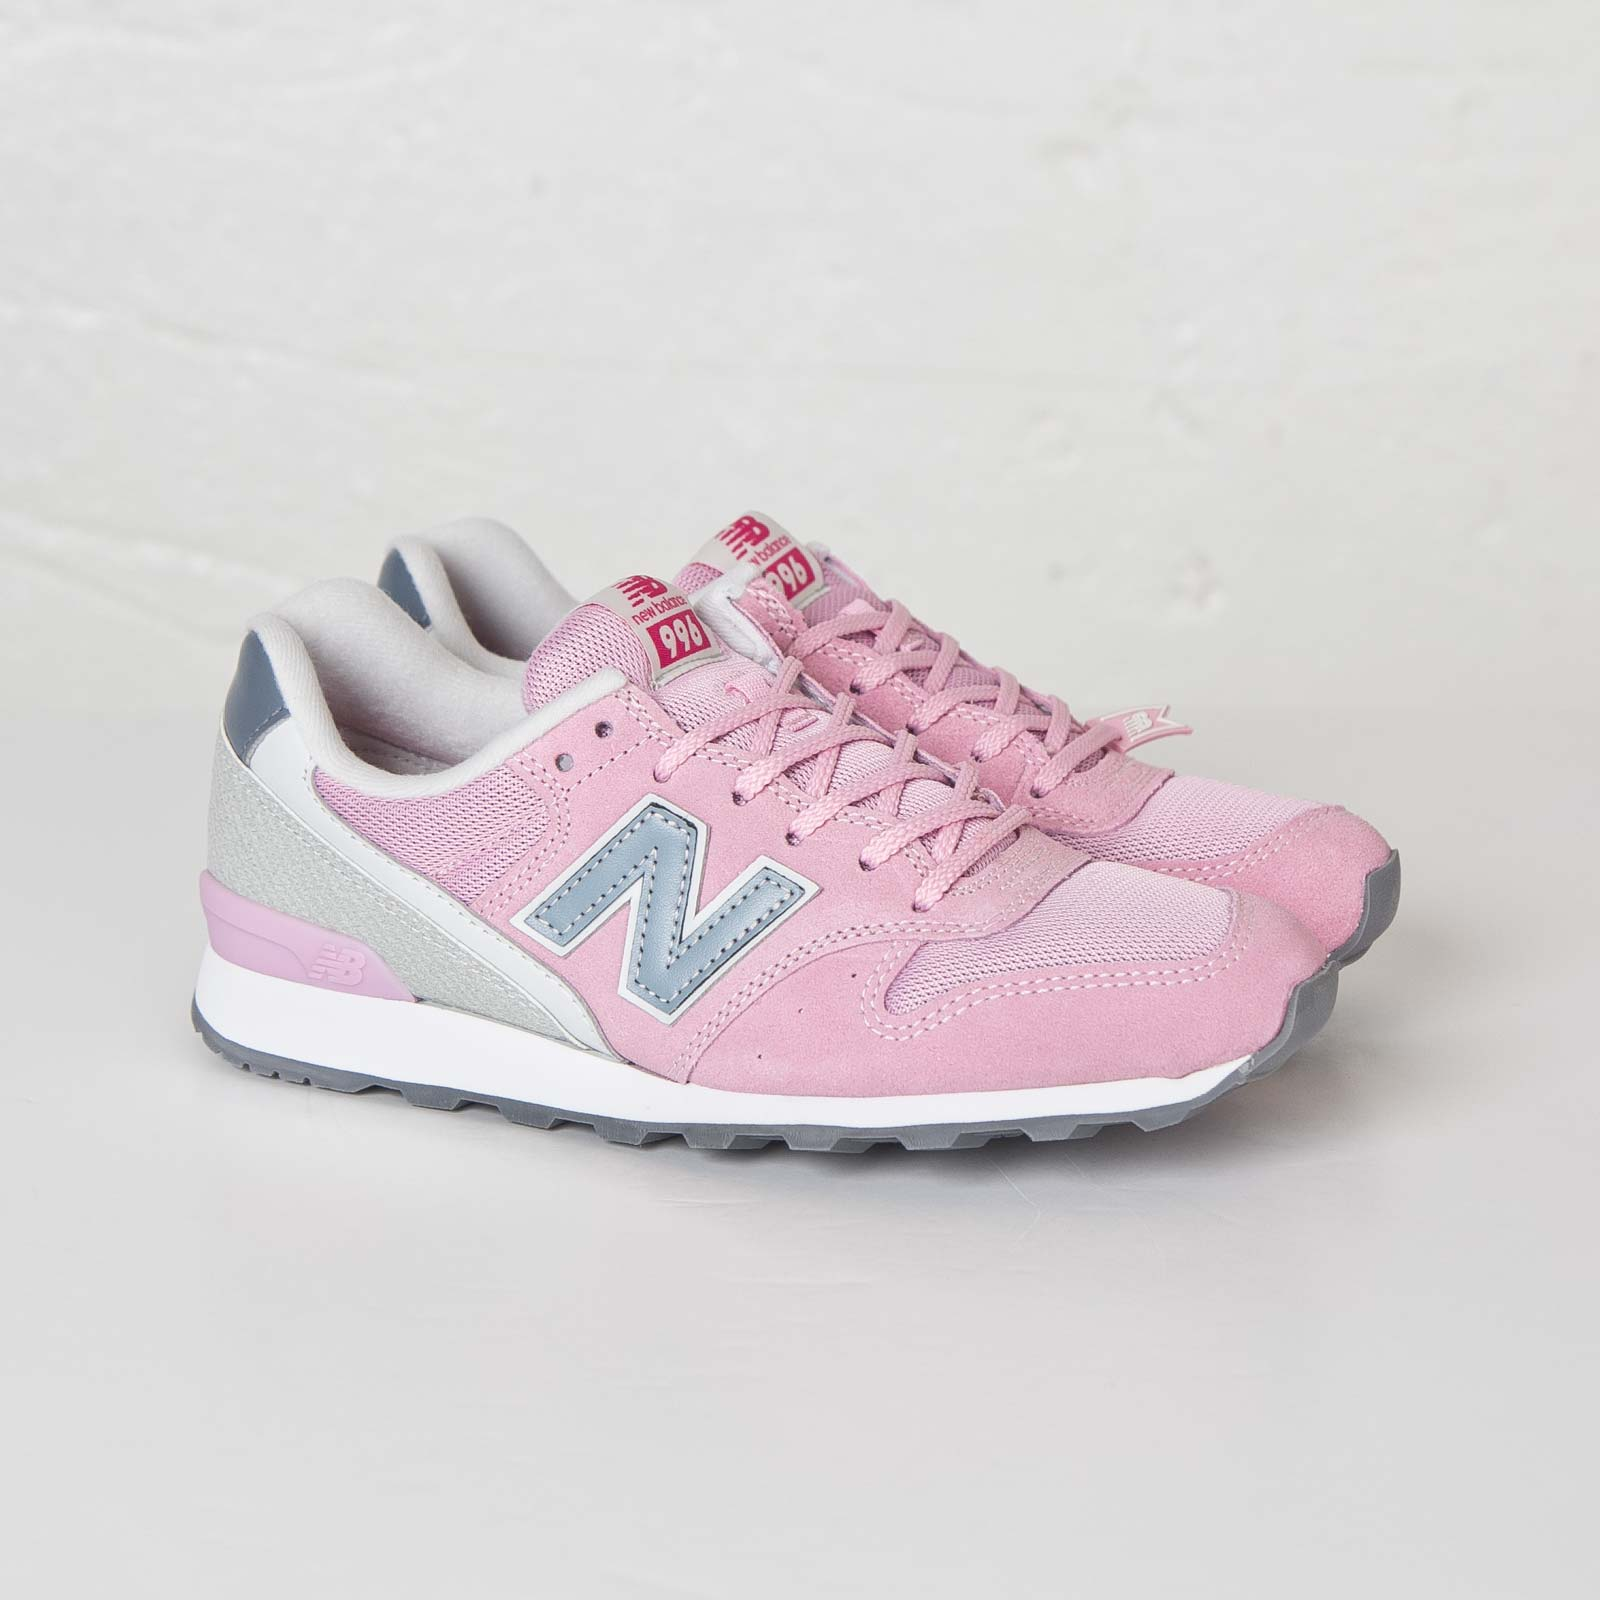 New Balance WR996 - Wr996gh - Sneakersnstuff | sneakers ...